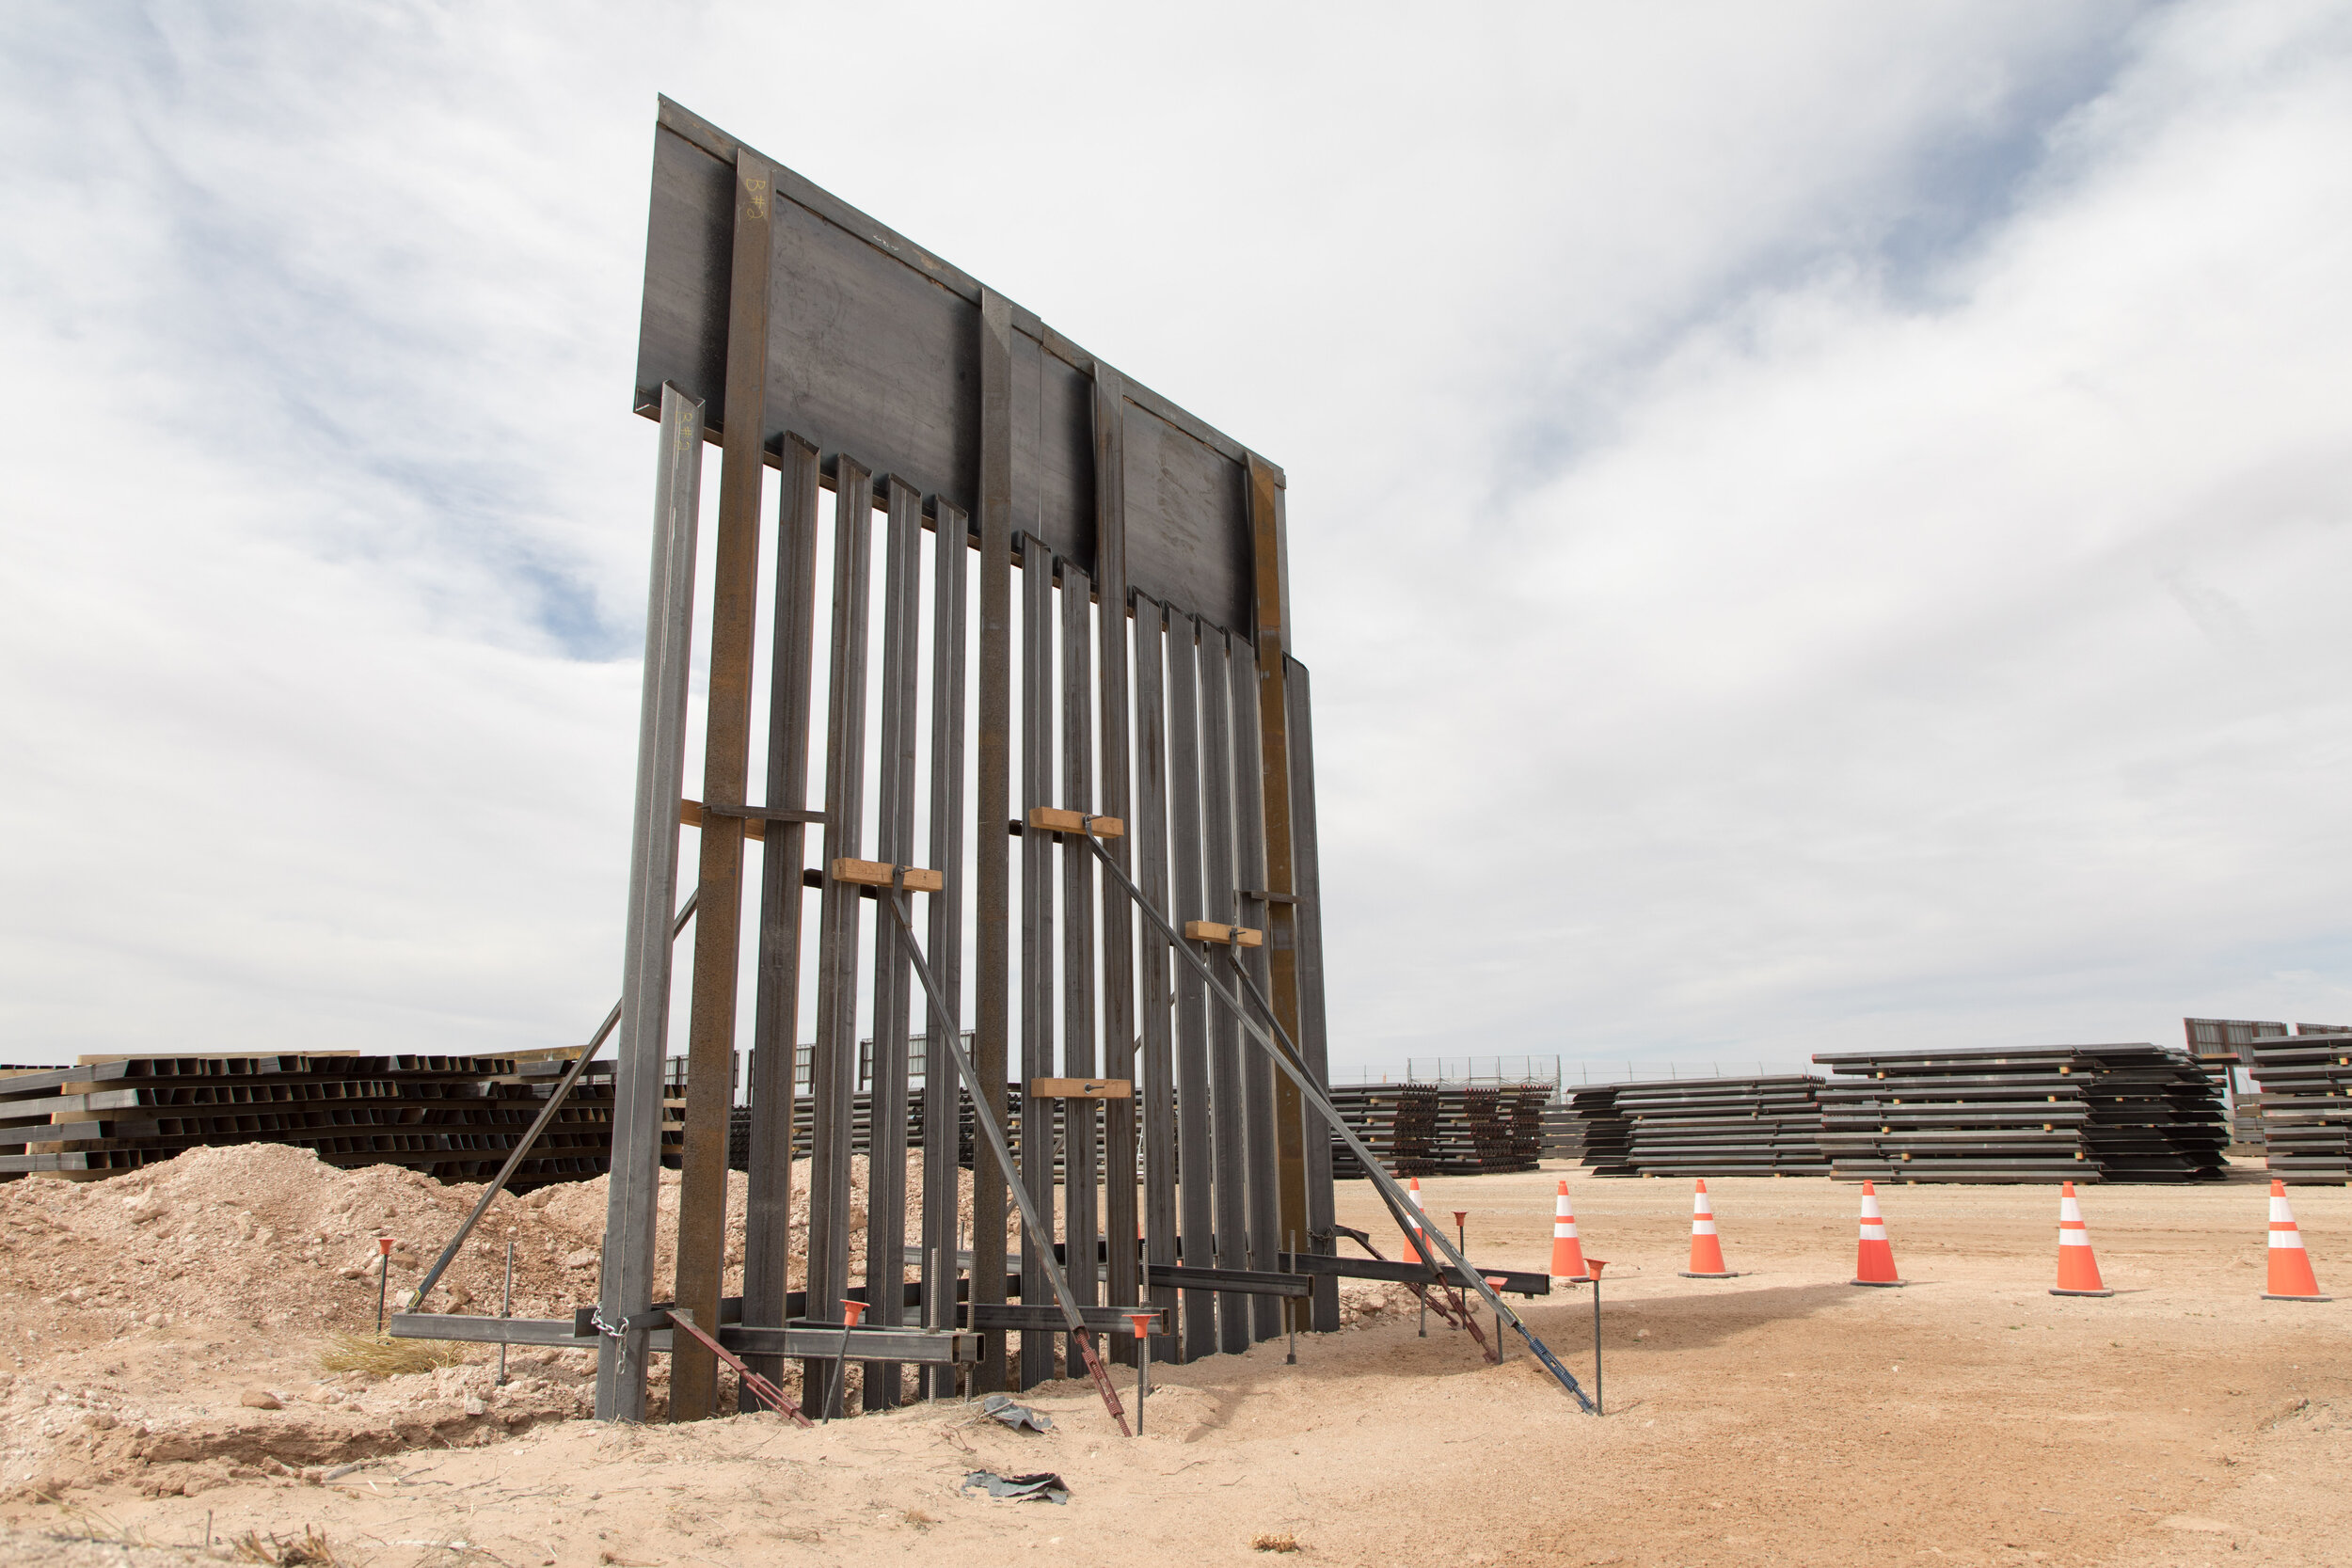 construction-staging-area-for-the-santa-teresa-border-wall-replacement-project_39528549850_o.jpg